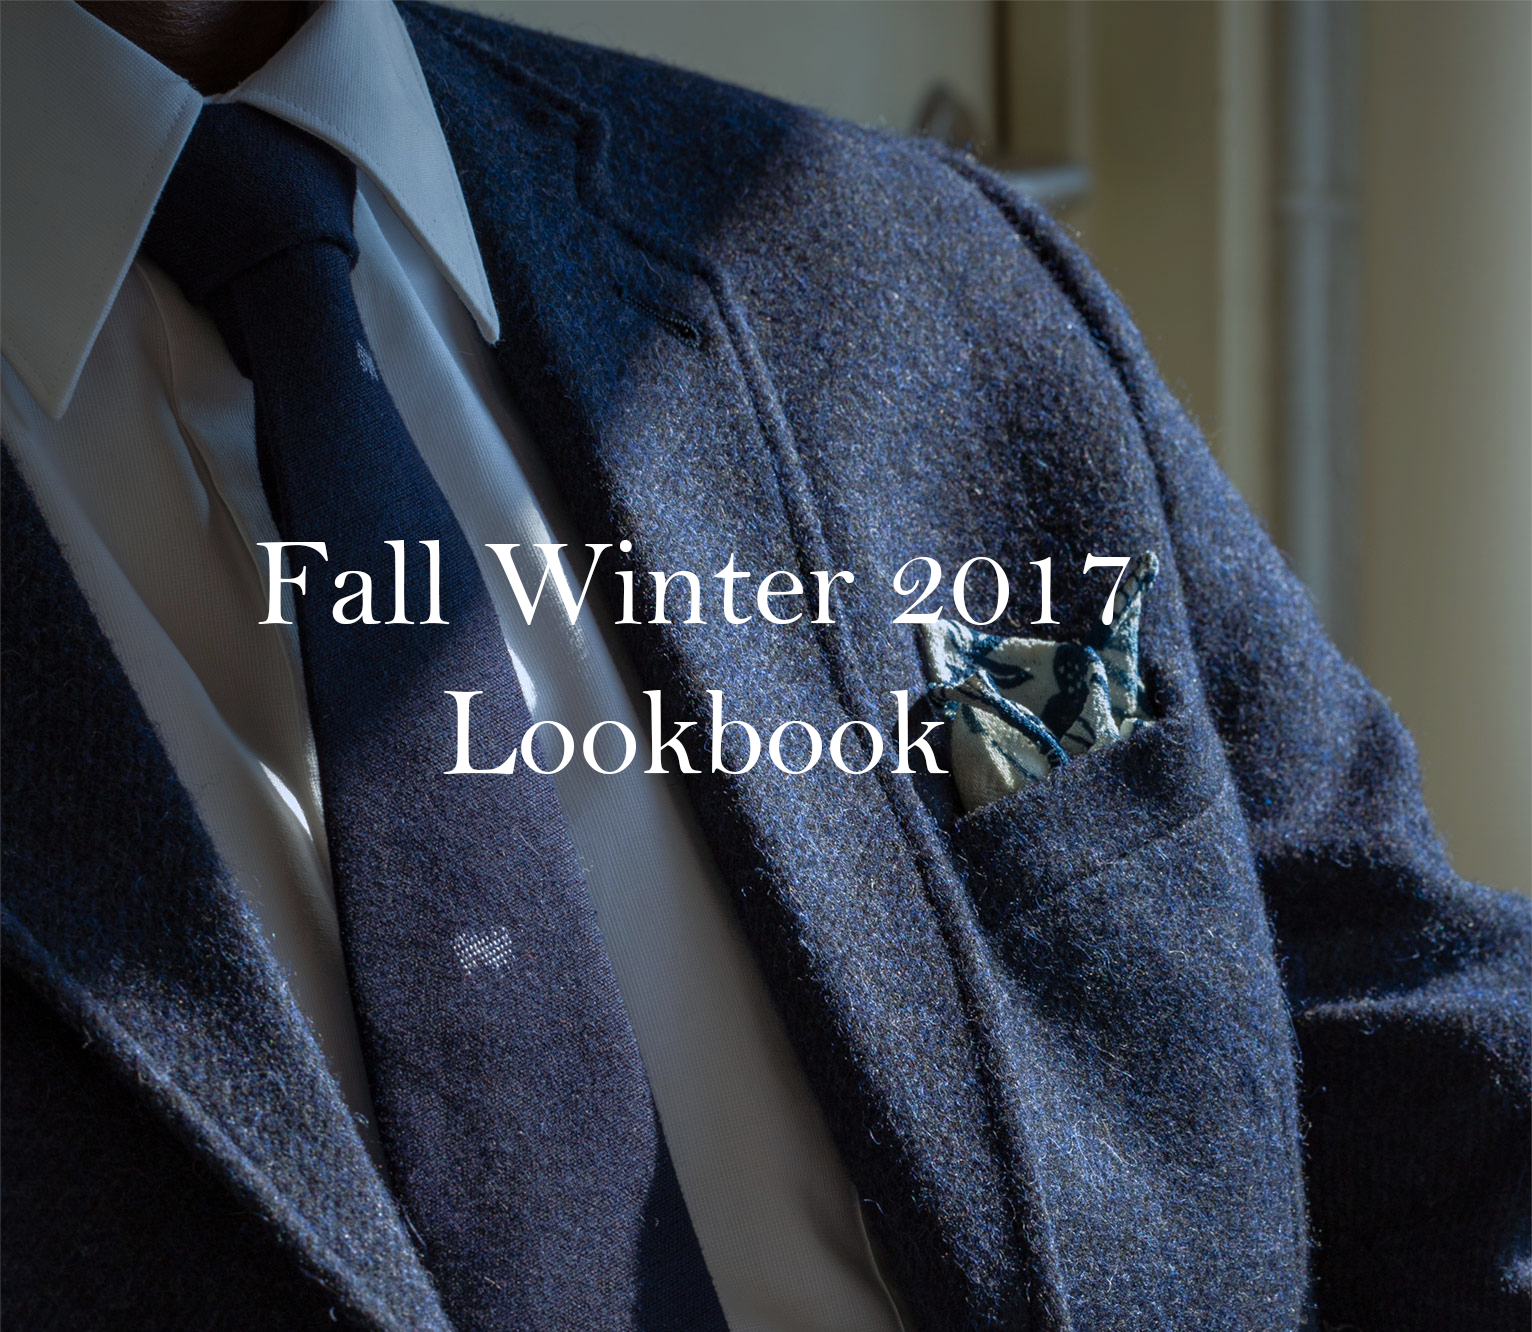 Fall winter look book.png